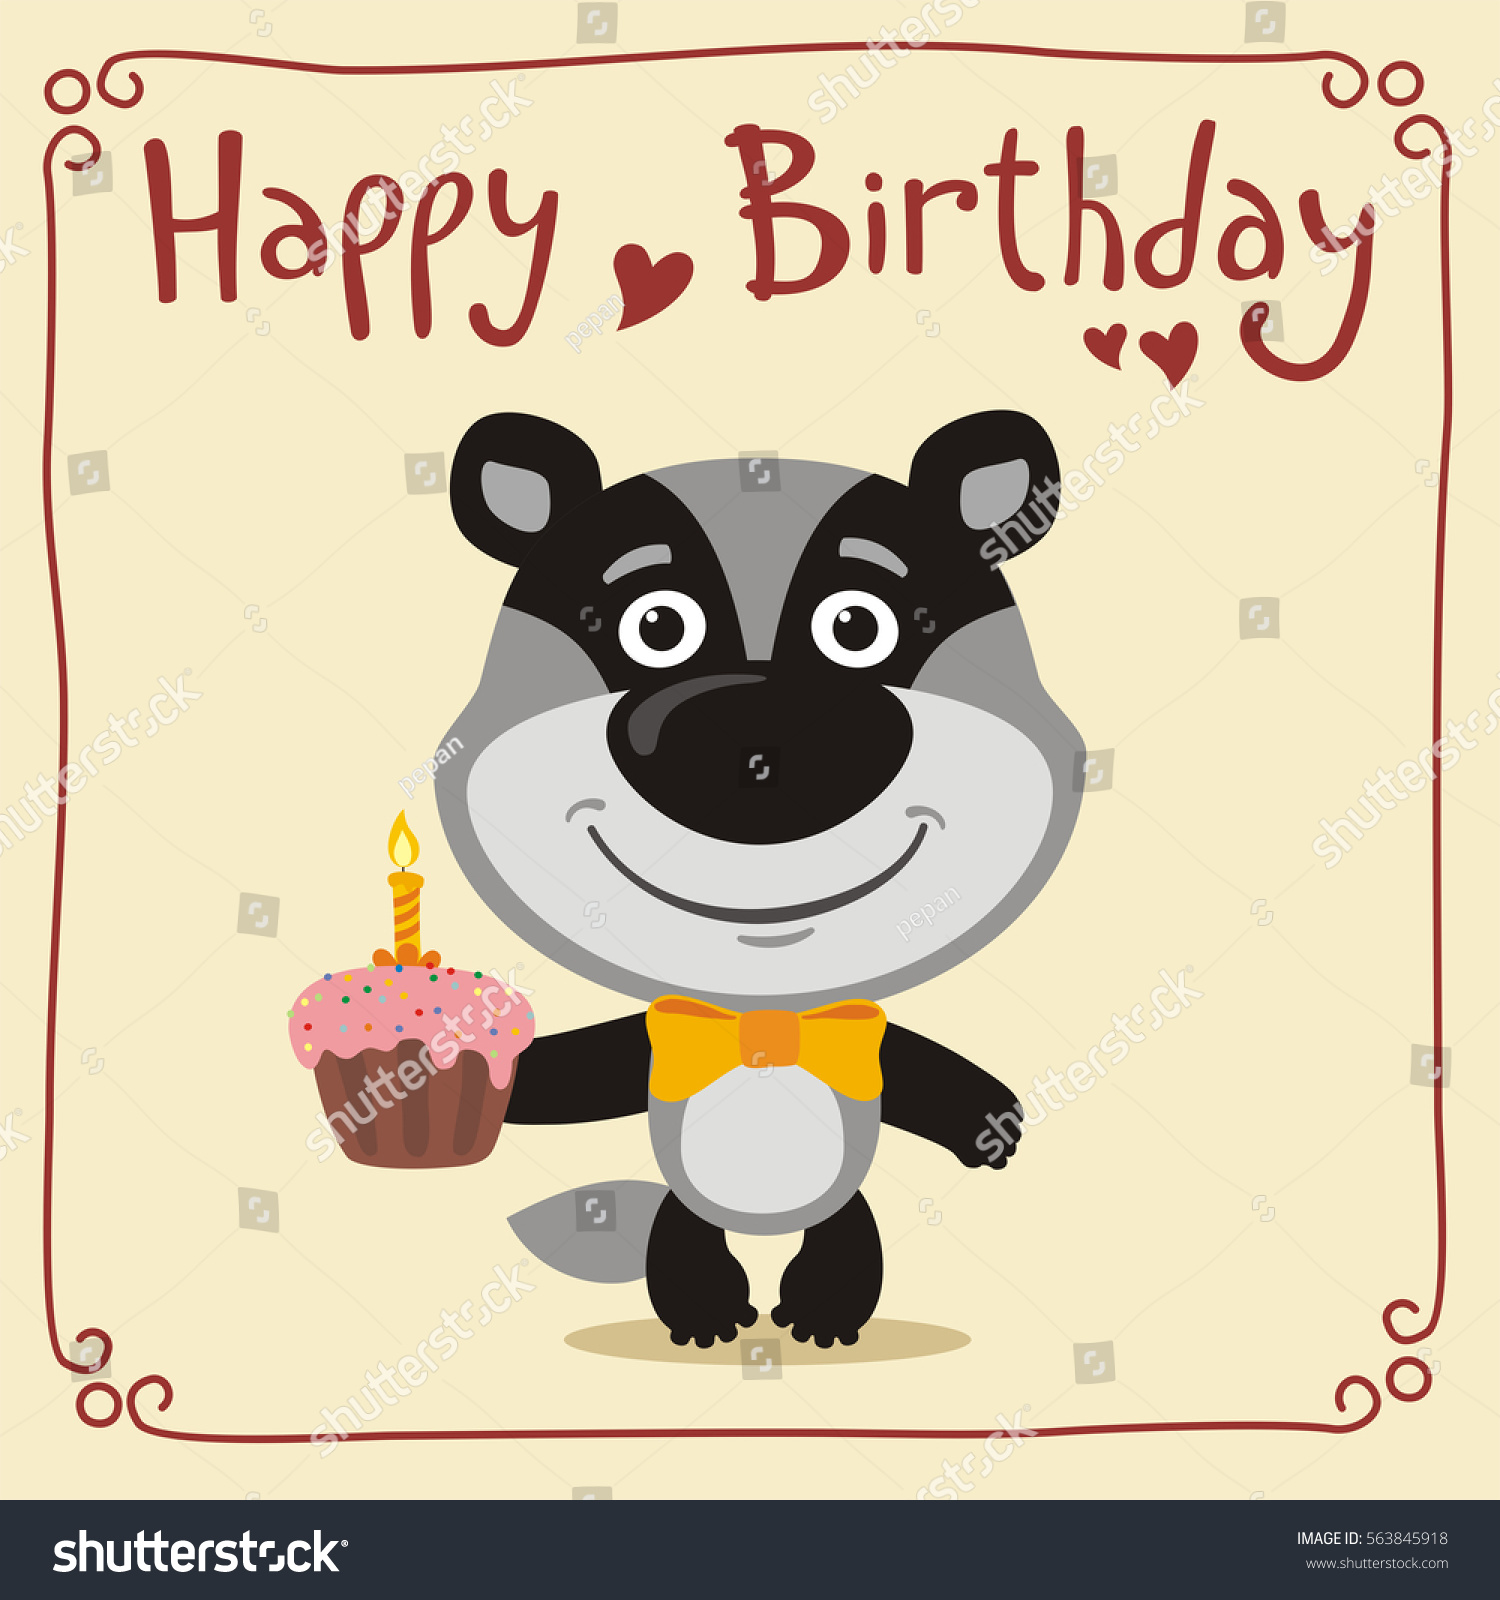 Happy Birthday Funny Badger Birthday Cake Stock Vector